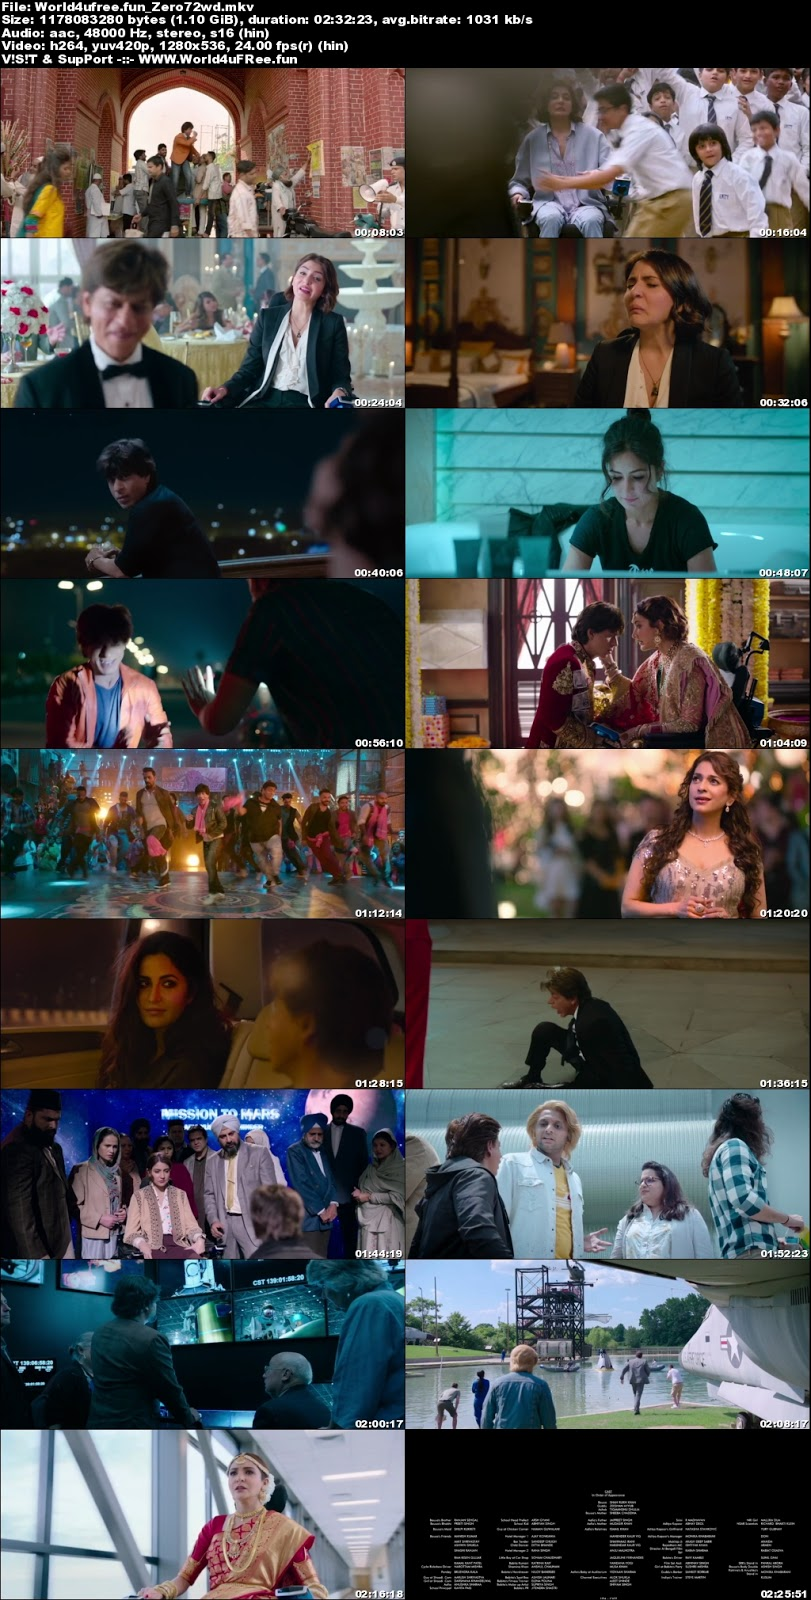 Zero 2018 Hindi 720p WEB HDRip 1.1Gb x264 pinbahis34.com , hindi movie Zero 2018 hdrip 720p bollywood movie Zero 2018 720p LATEST MOVie Zero 2018 720p DVDRip NEW MOVIE Zero 2018 720p WEBHD 700mb free download or watch online at pinbahis34.com